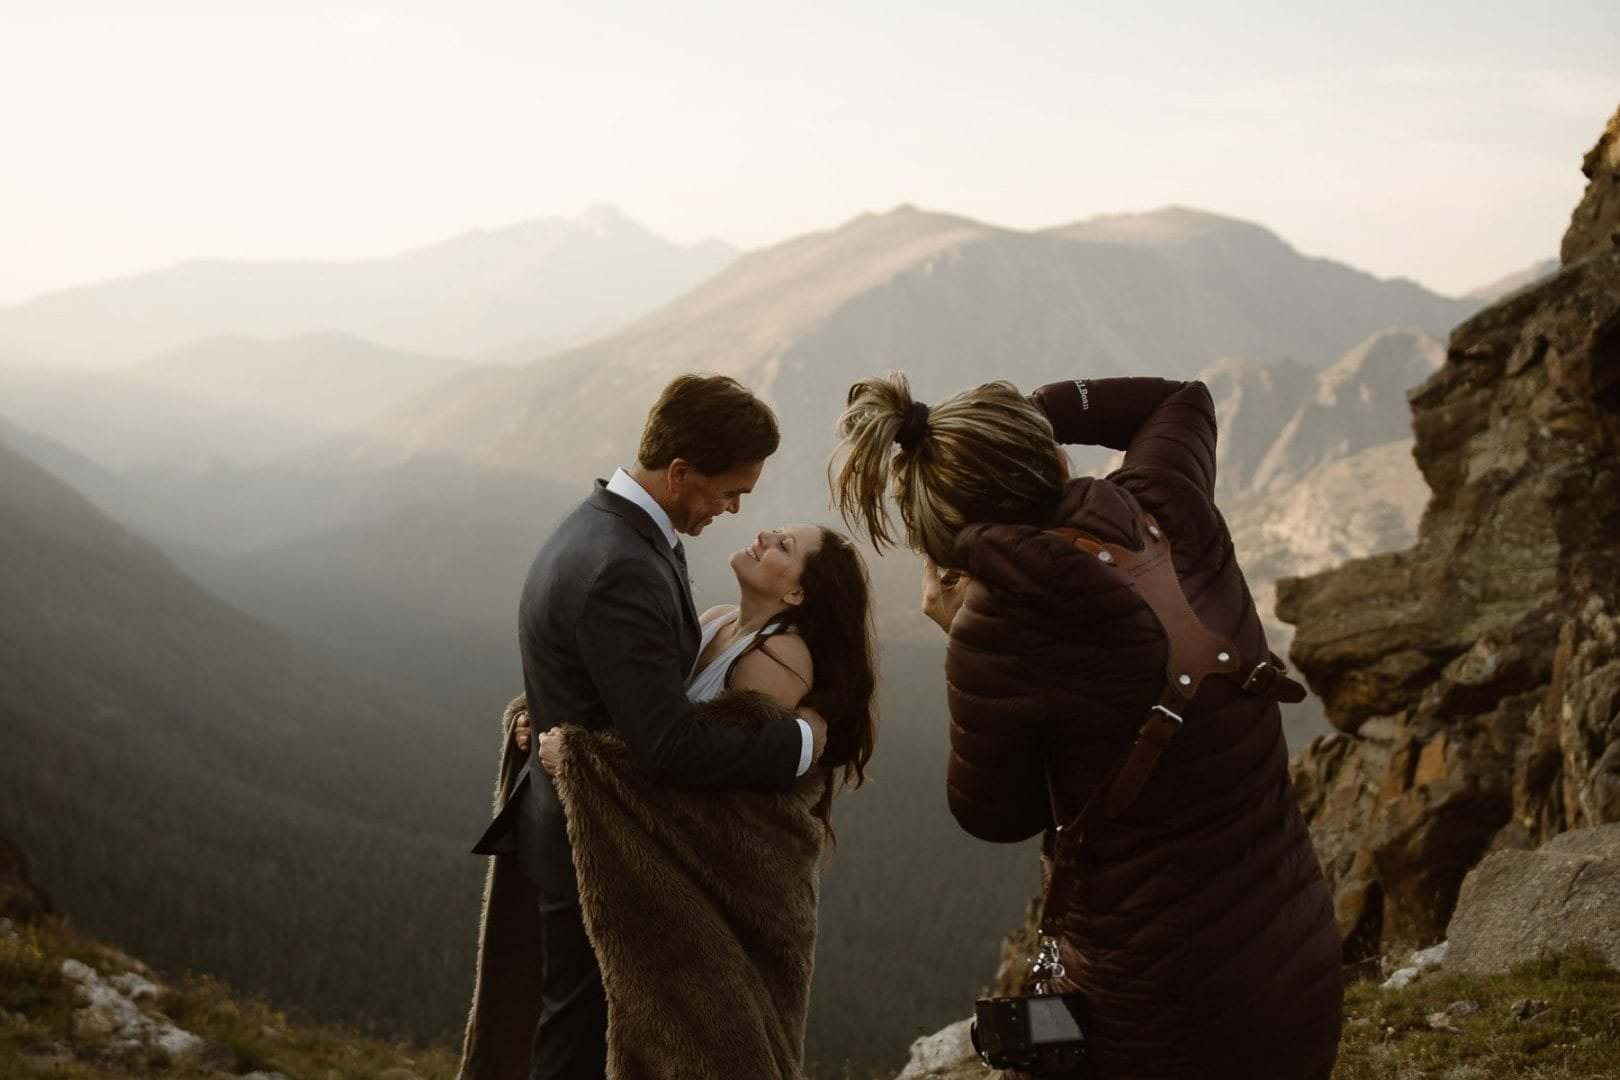 colorado-best-adventure-elopement-photographer-adventure-mountain-weddings-Justyna-E-Butler-breckenridge-vaul-estes-park-denver-adventure-weddings